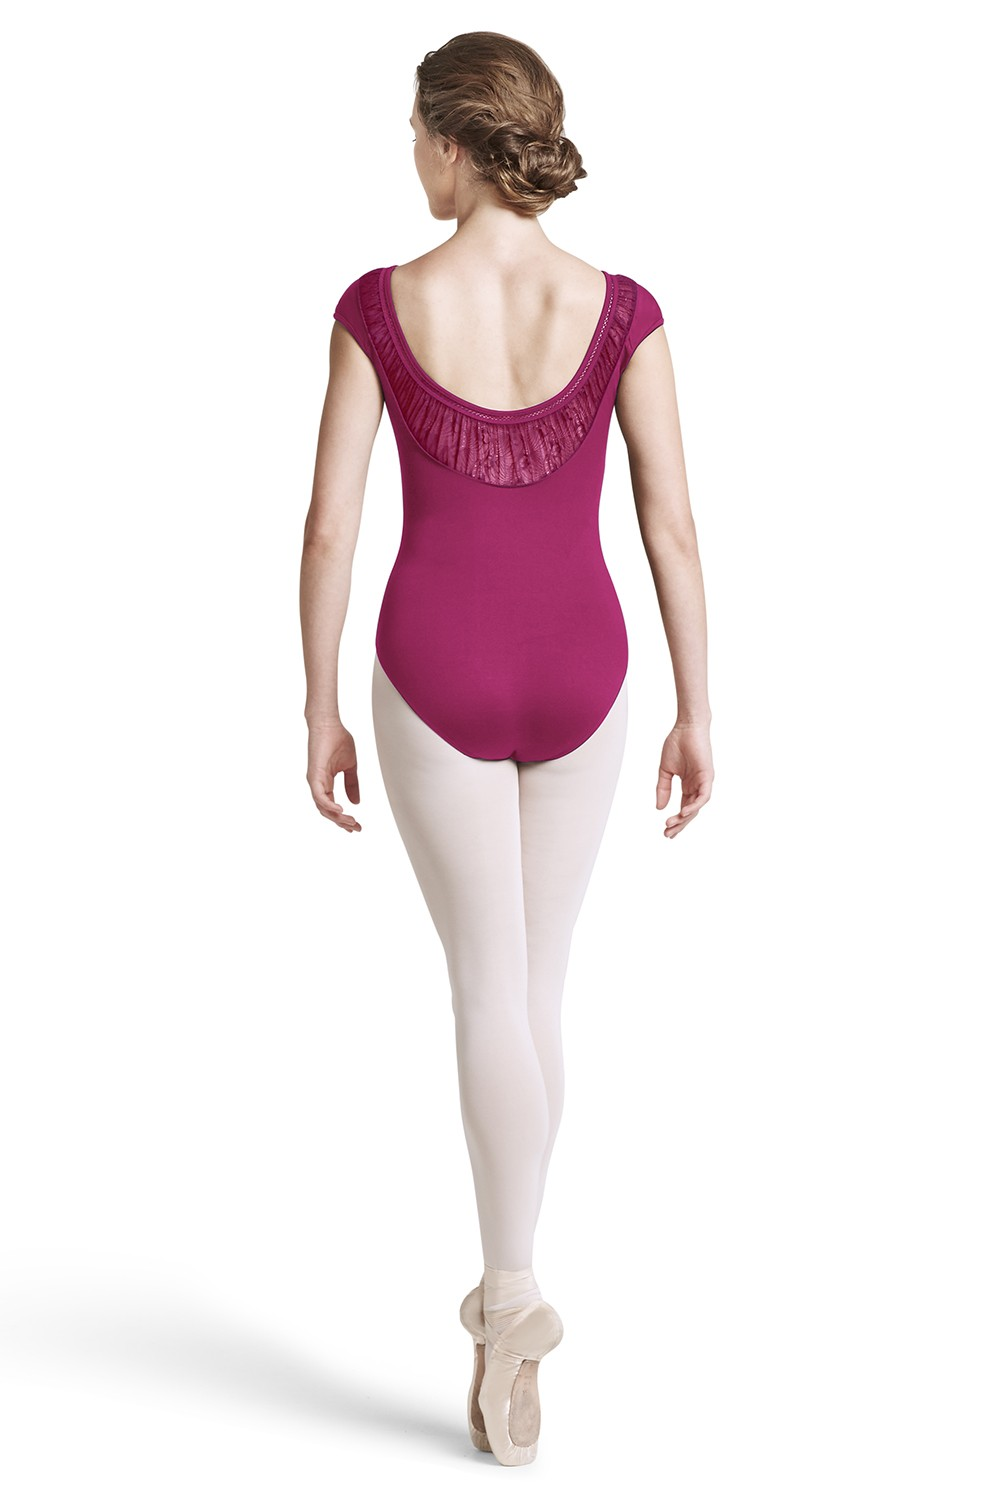 Damini Women's Dance Leotards